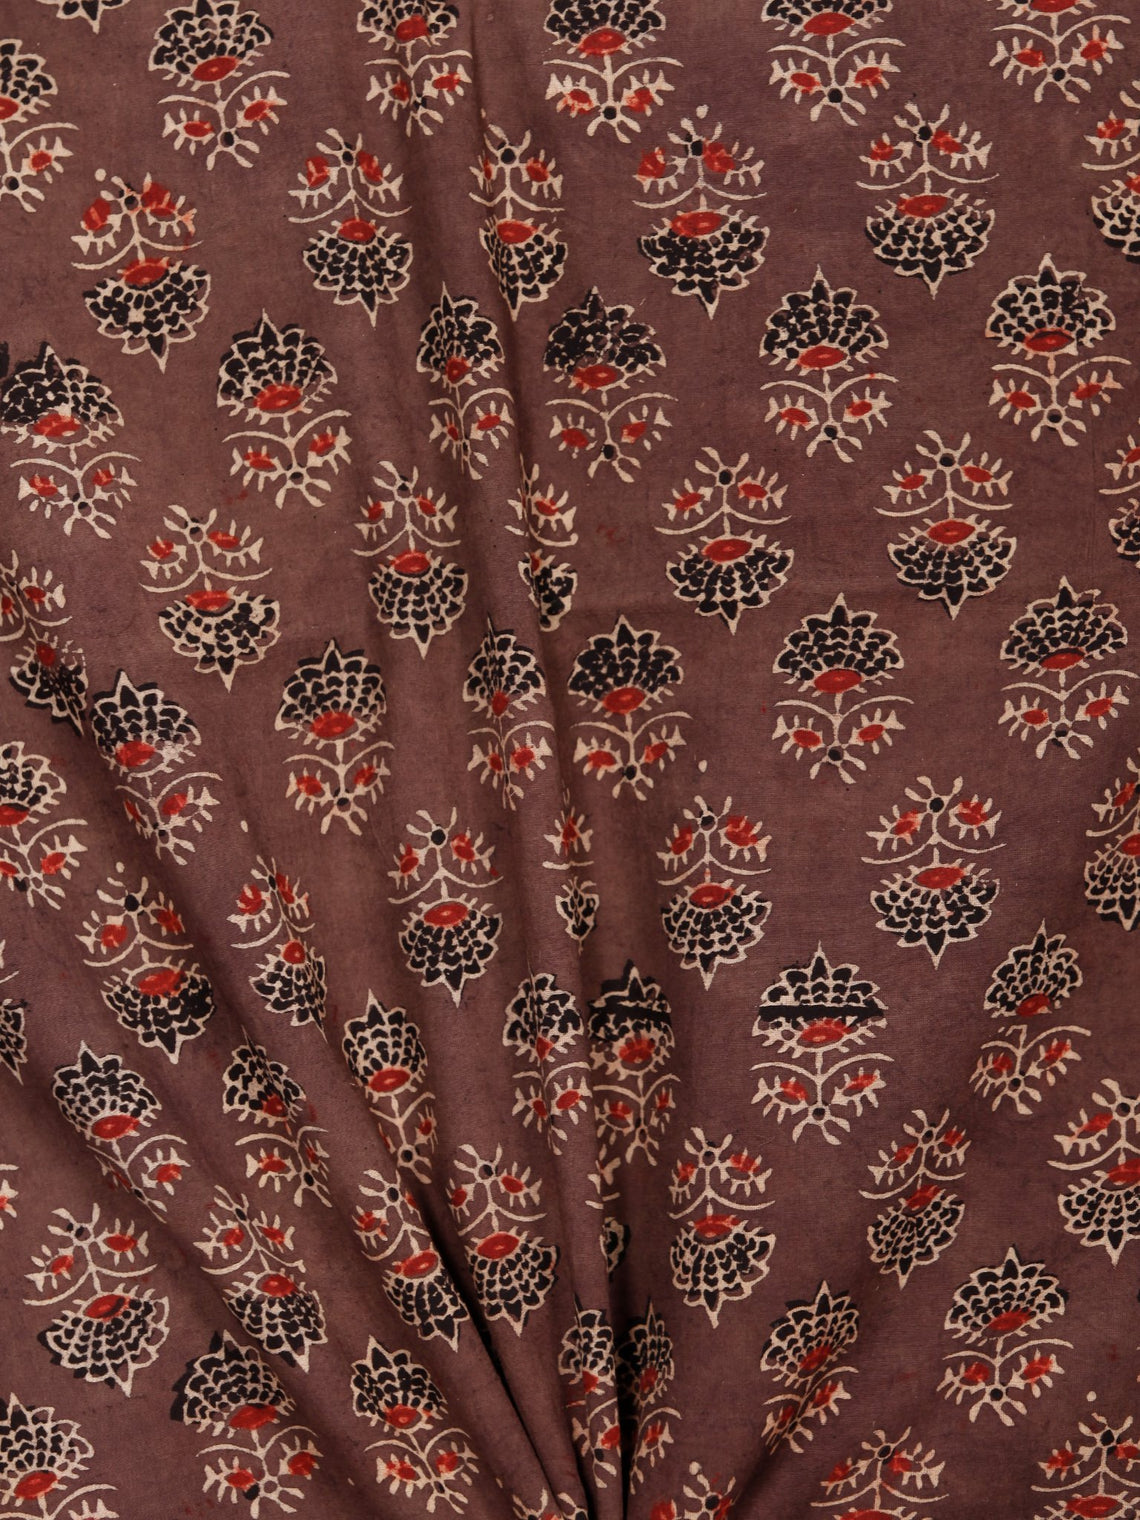 Brown Black Maroon Beige Ajrakh Hand Block Printed Cotton Fabric Per Meter - F003F1784